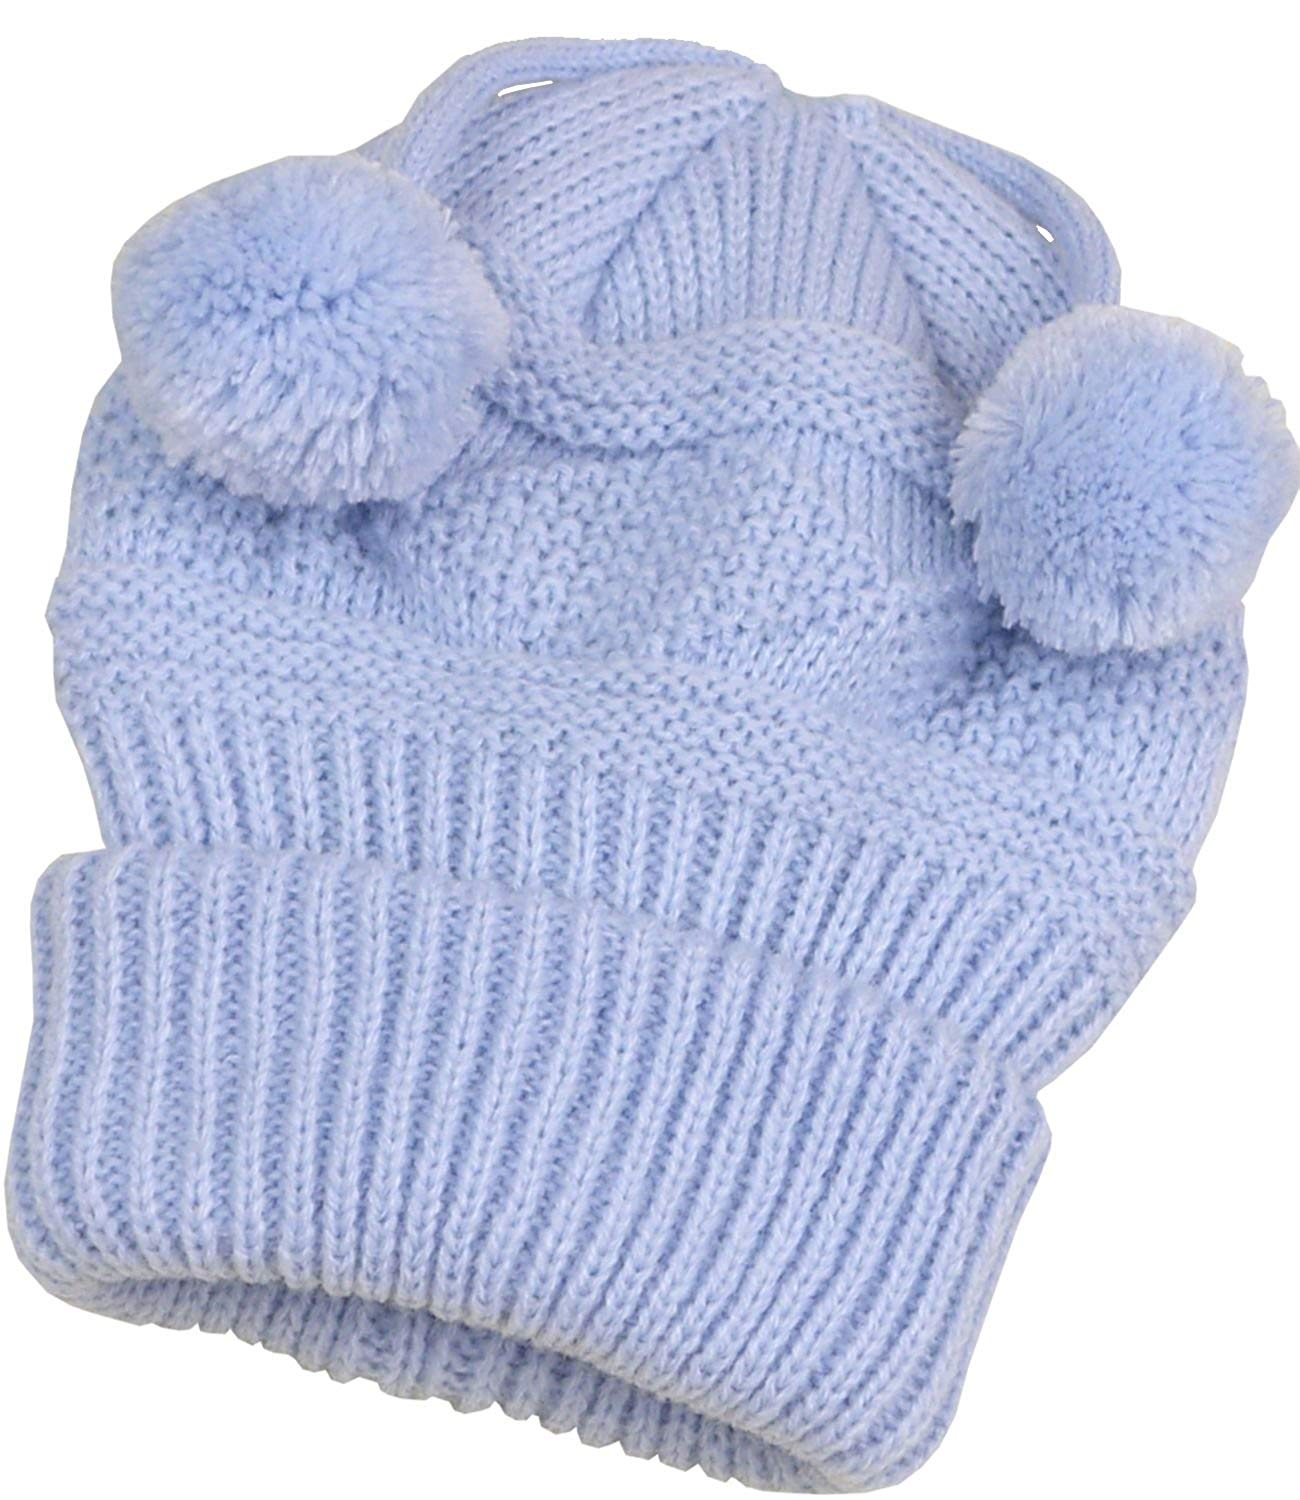 BabyPrem Baby Hat Cable Knit Beanie Pom Pom Warm Clothes Cap Pink Blue Boy Girl